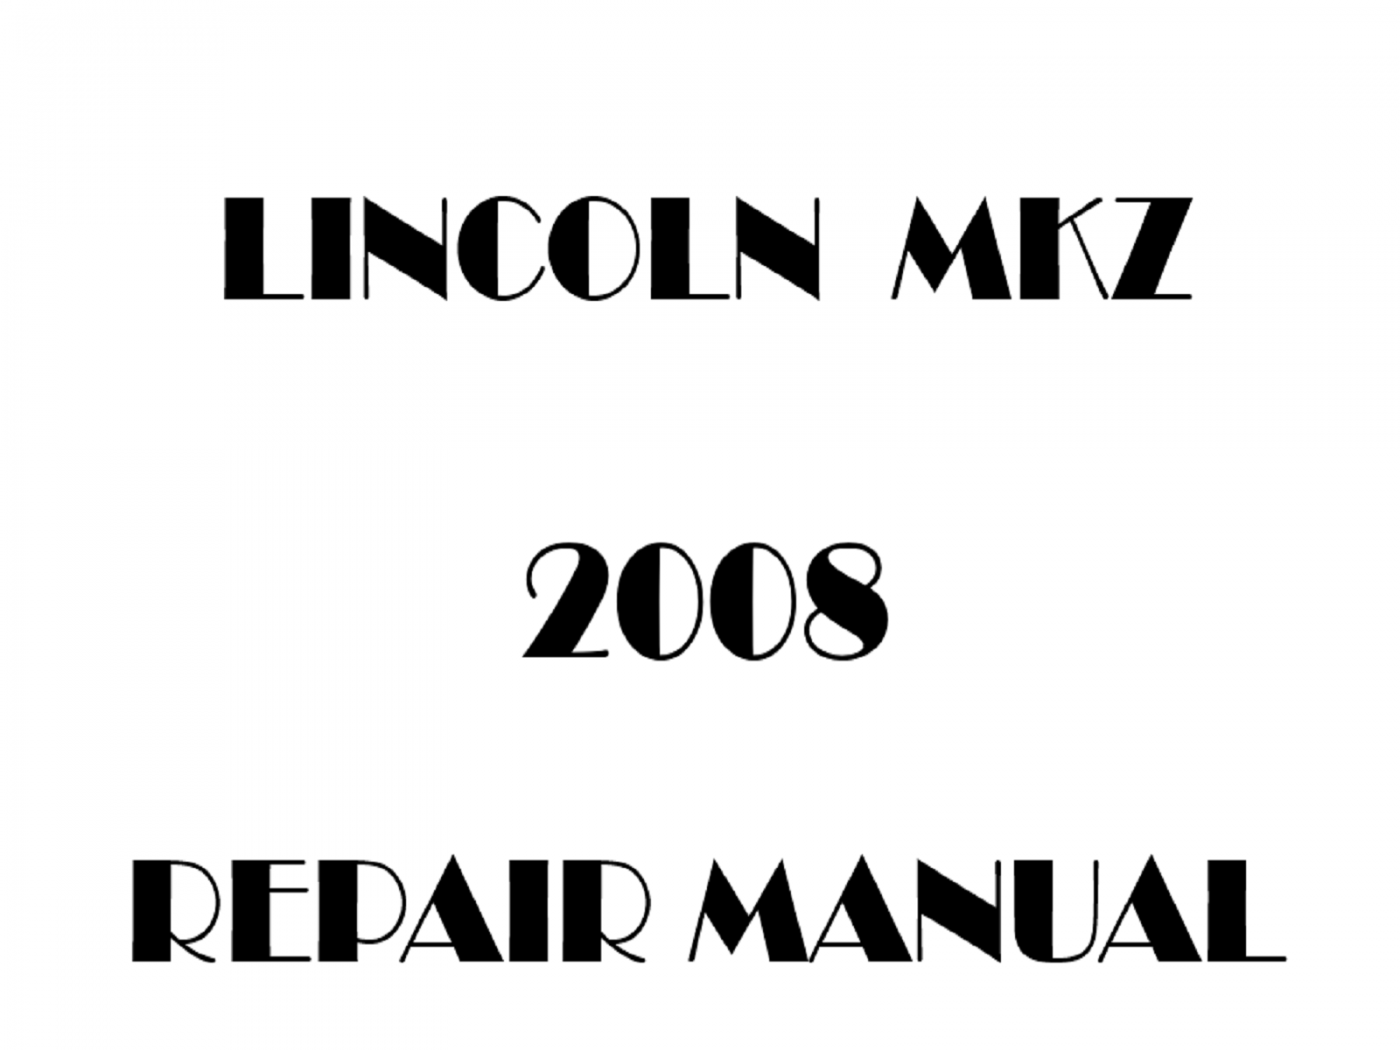 2008 Lincoln MKZ repair manual